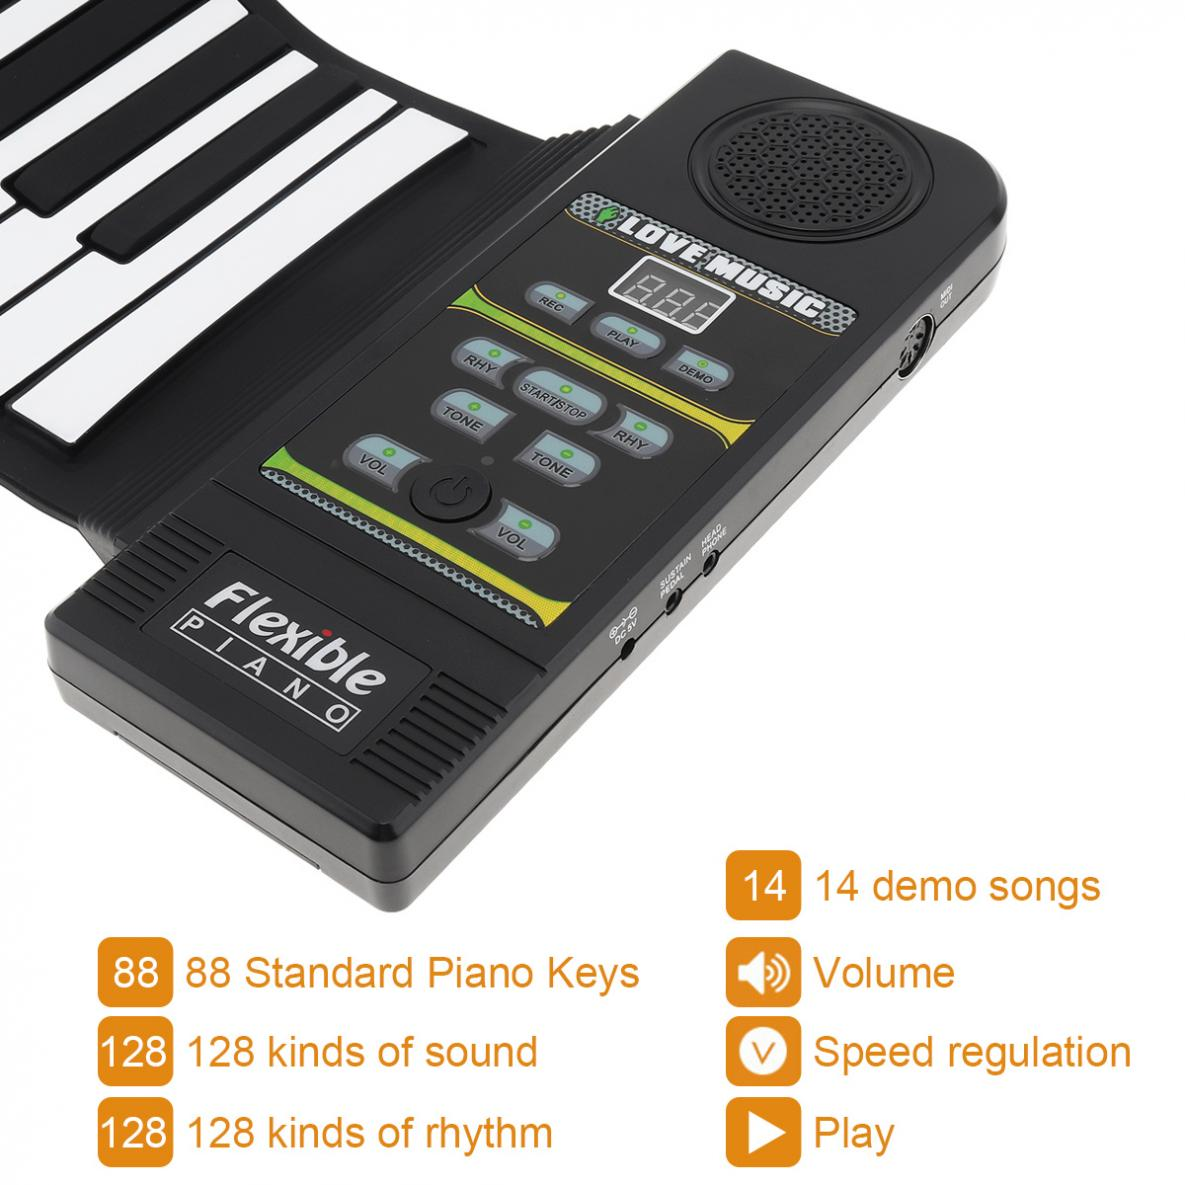 88Keys Electronic Flexible Roll Up Piano 128 Tones 100 Rhythms USB & MIDI Port with Speaker for beginners / Performance enlarge